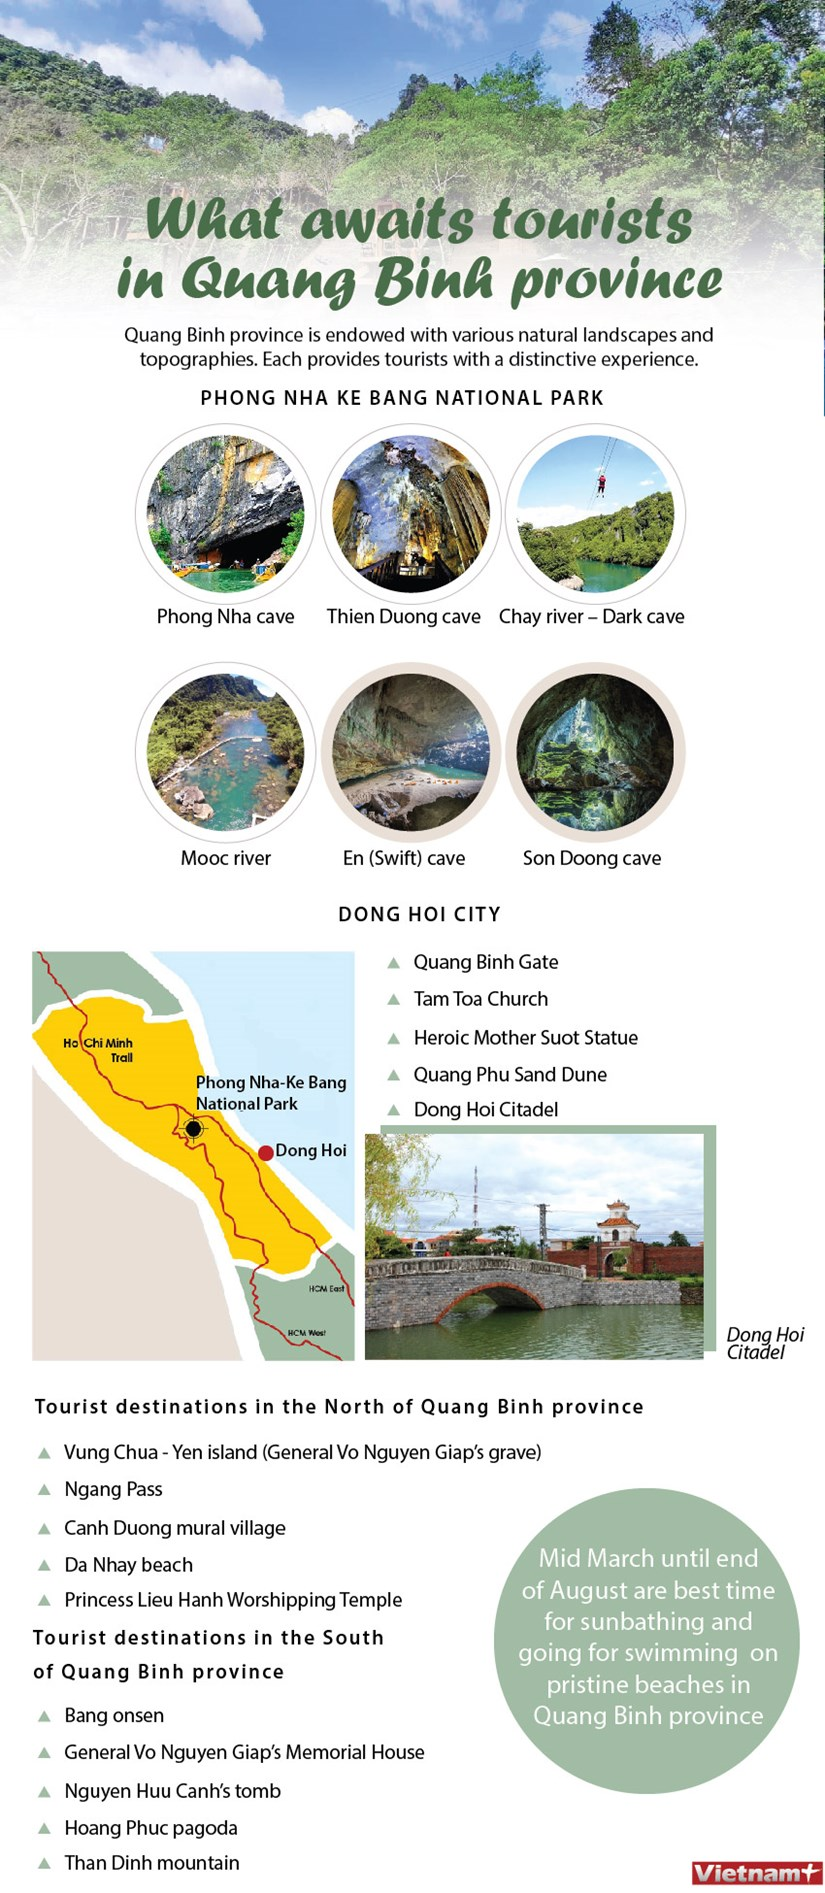 What awaits tourists in Quang Binh province hinh anh 1